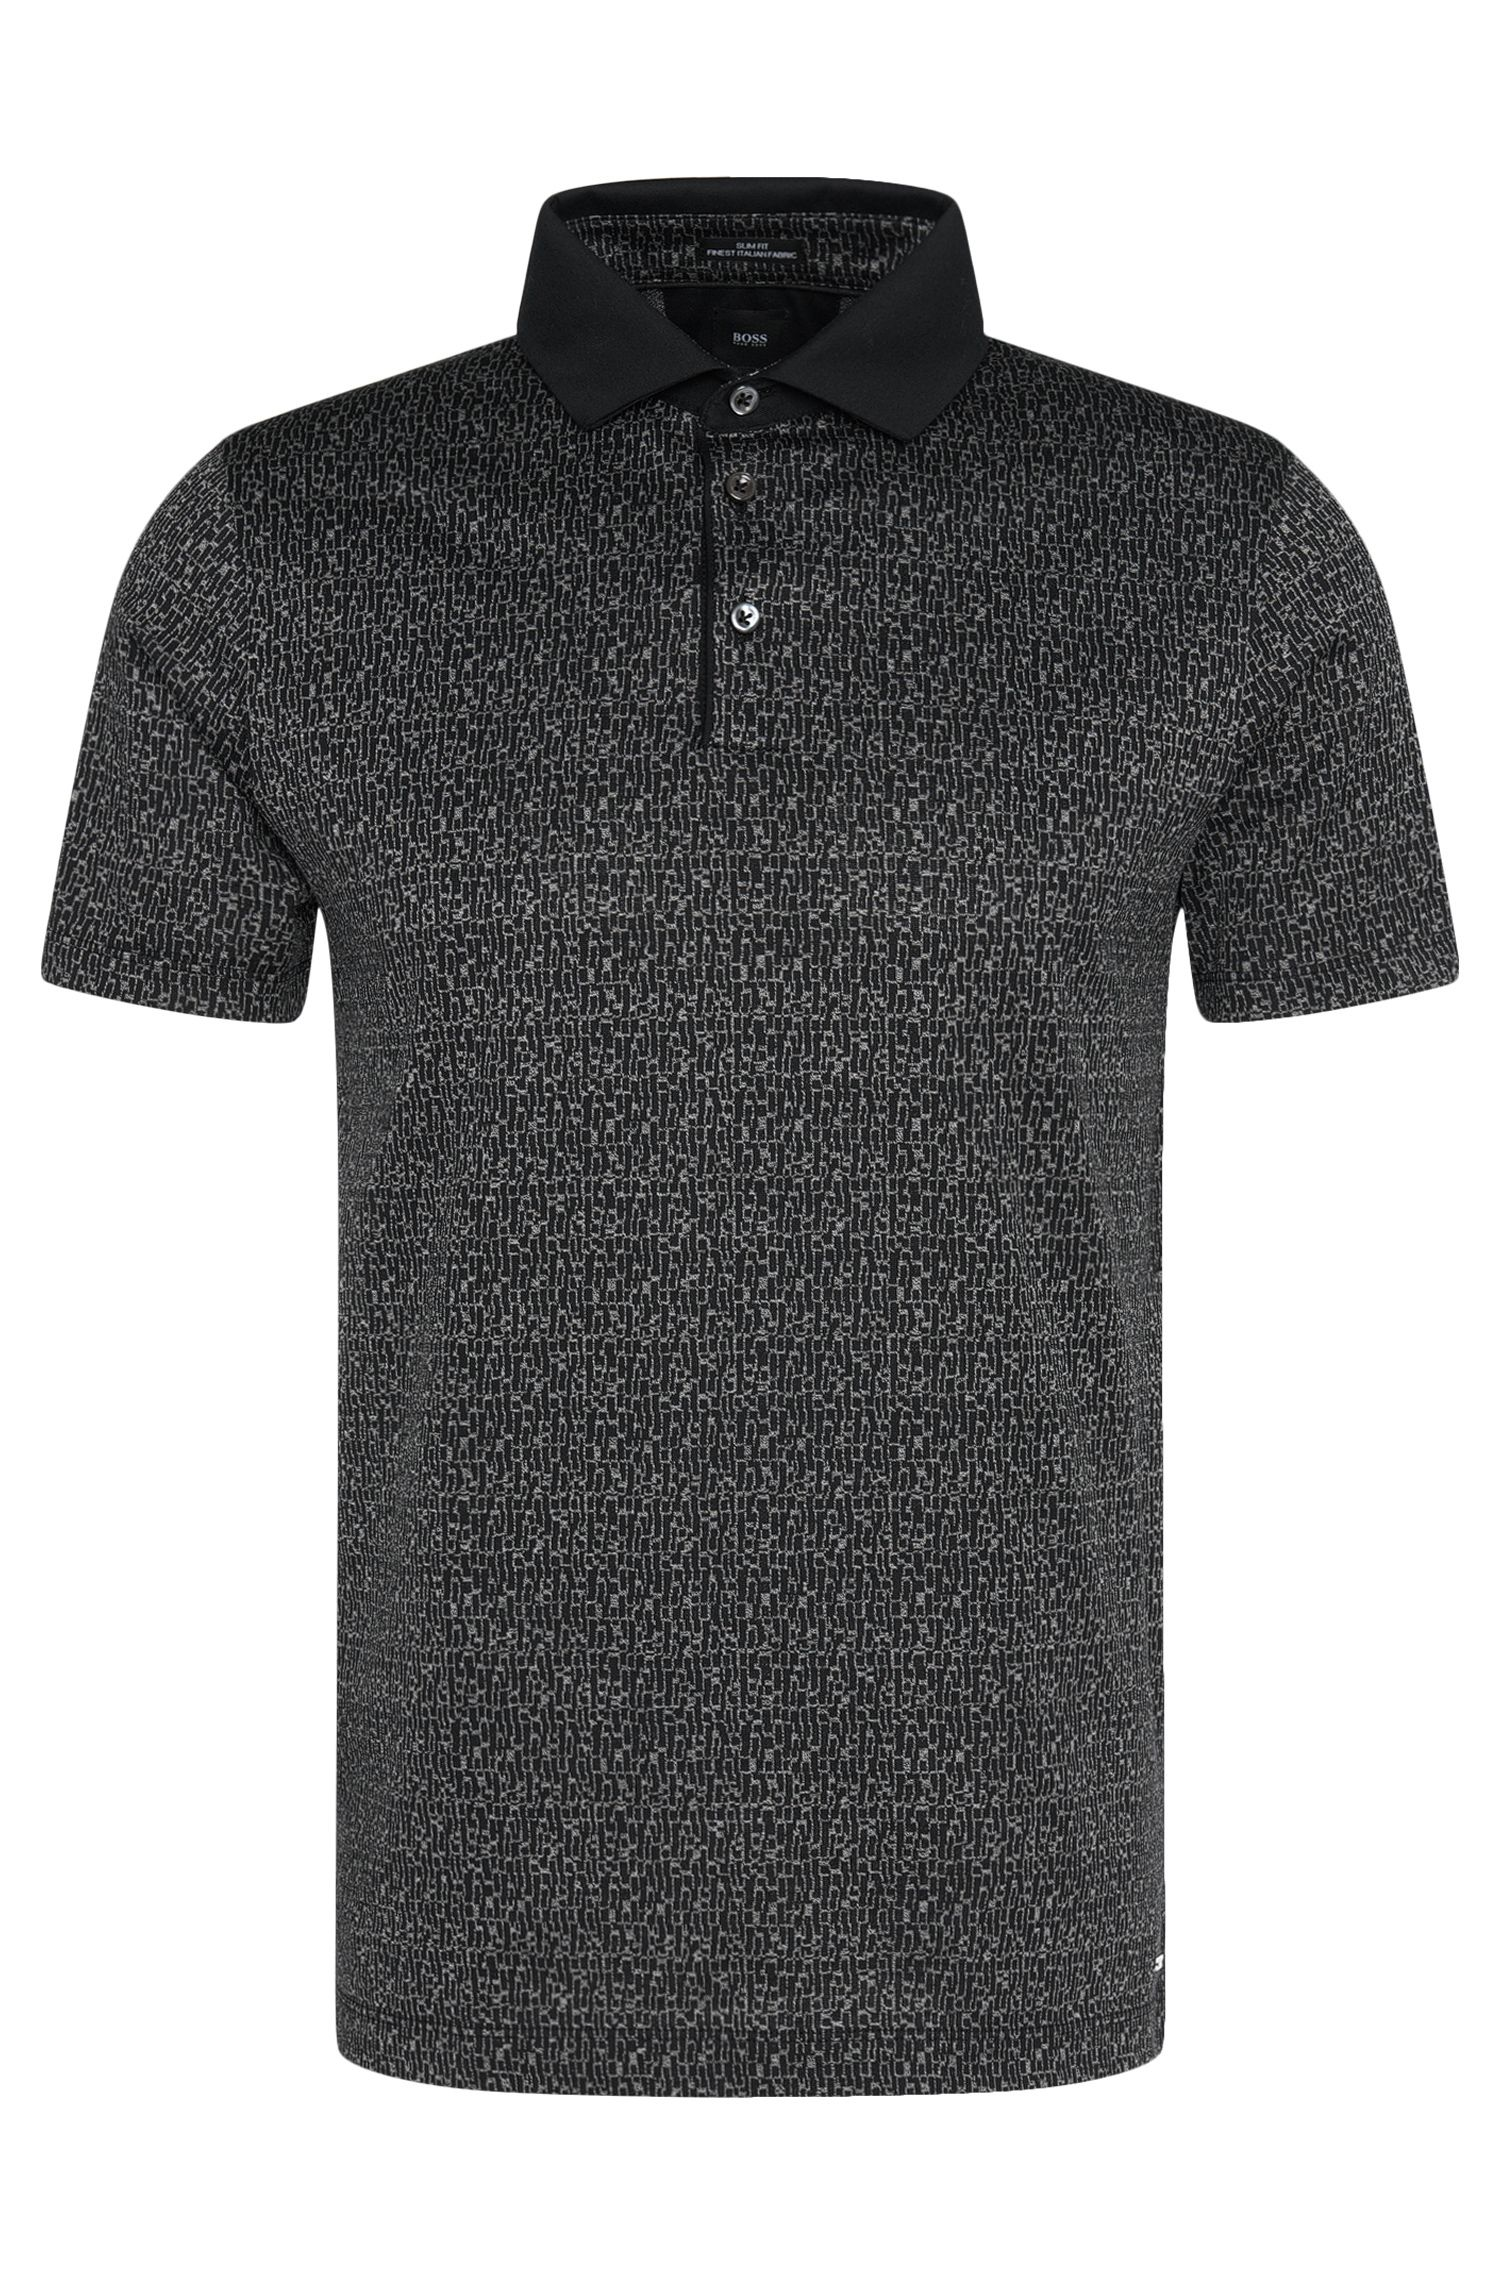 'T-Perry' | Regular Fit, Italian Cotton Jacquard Polo